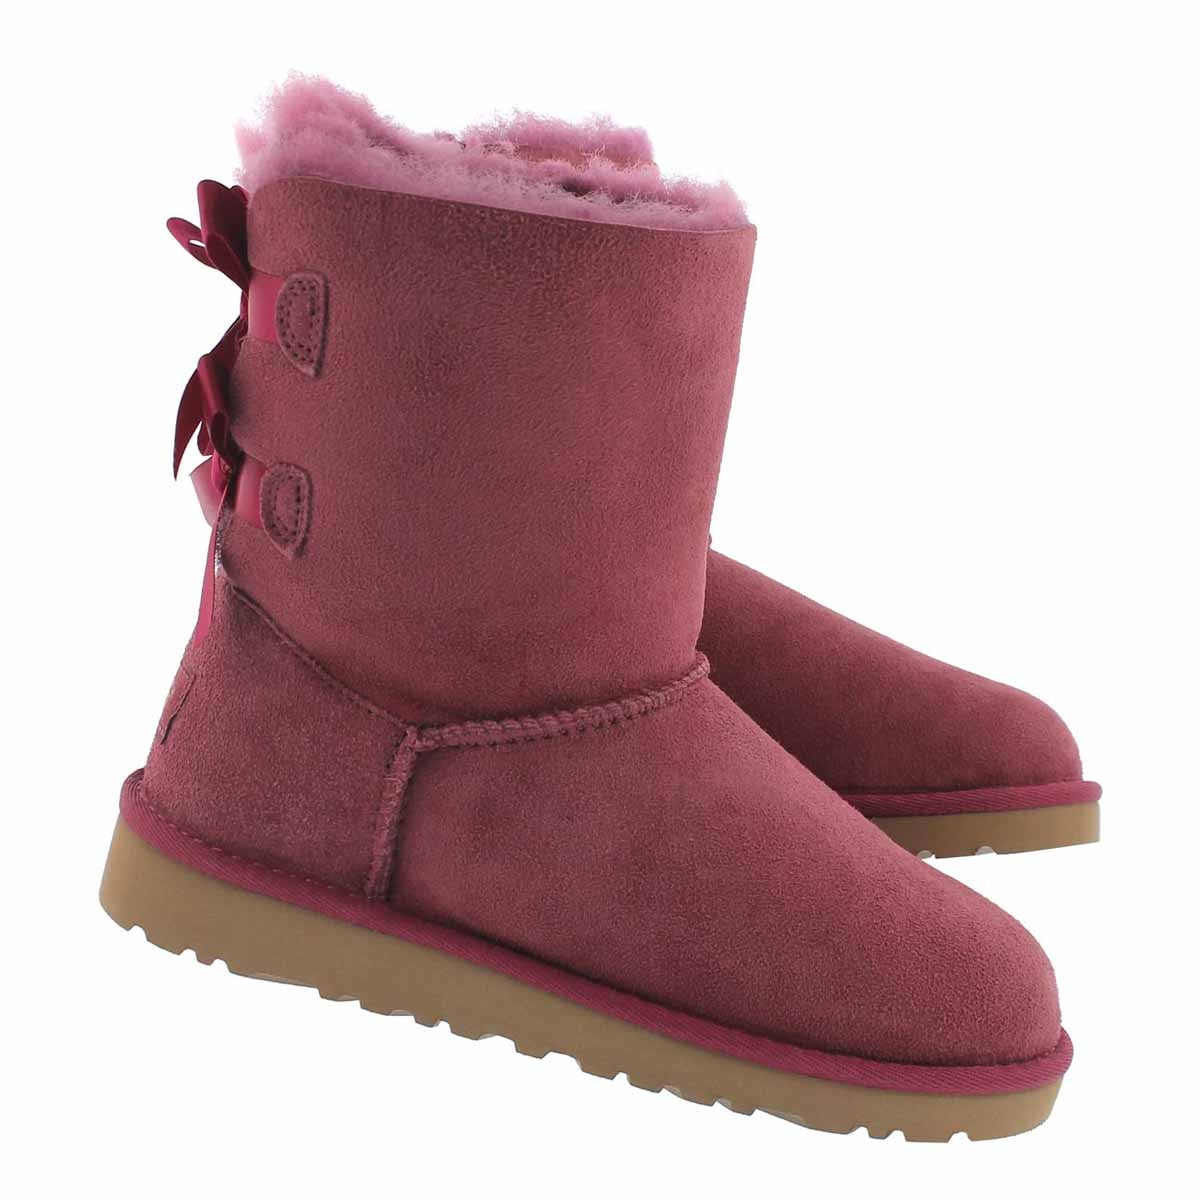 Grls Bailey Bow boug sheepskin boot